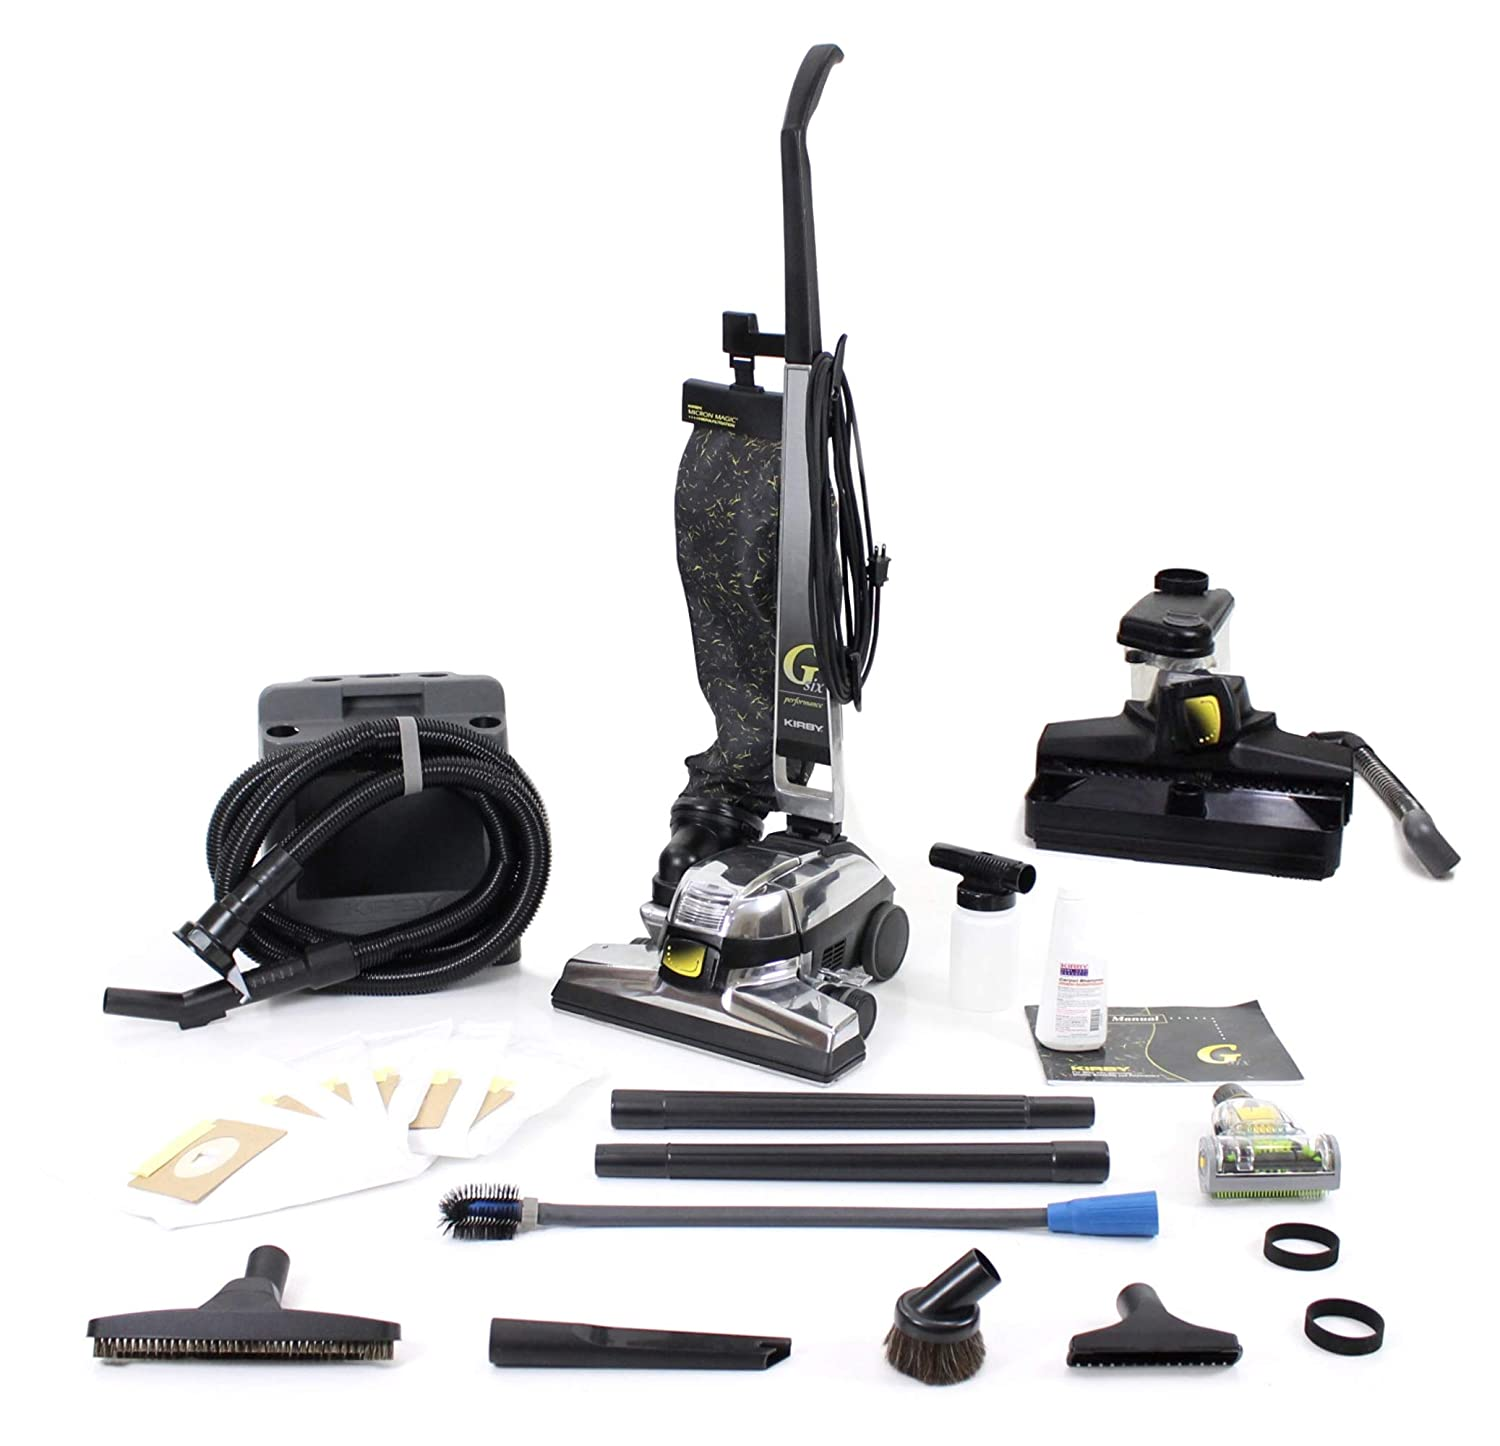 GV Kirby G6 Vacuum Cleaner & Shampooer w Tools (Certified Refurbished) …